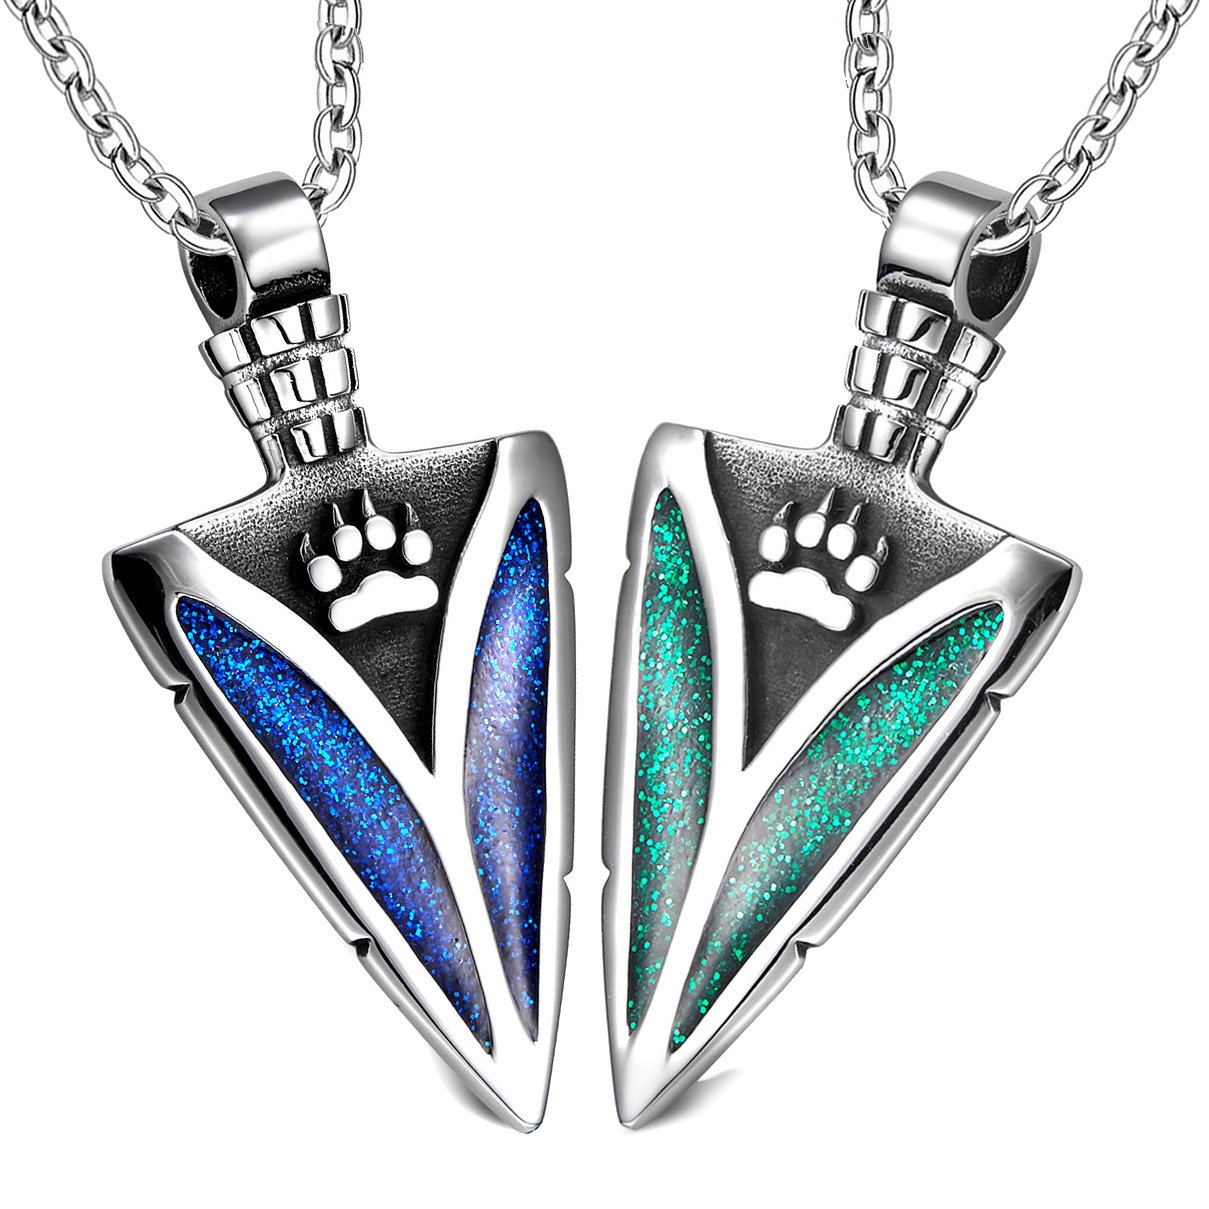 Arrowhead Wild Wolf Paw Love Couples or BFF Set Protection Amulets Sparkling Royal Blue Green Necklaces